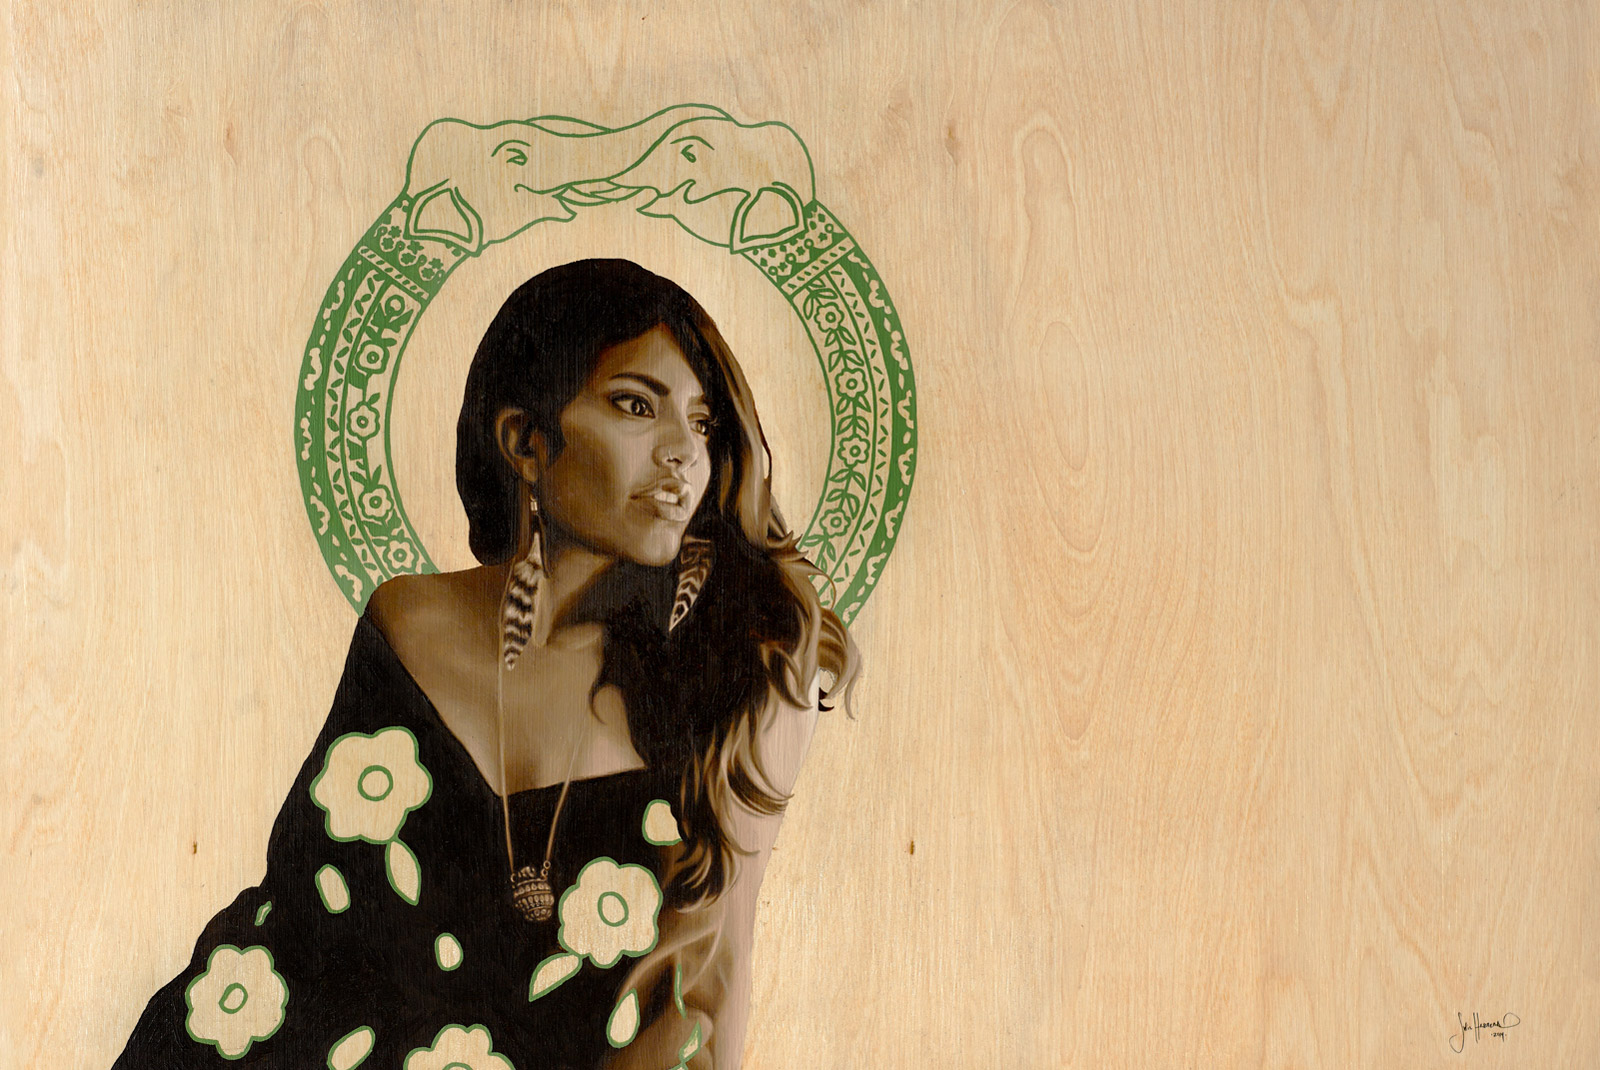 Amina - 24x36 Oil Painting on Wood By Jodie Herrera